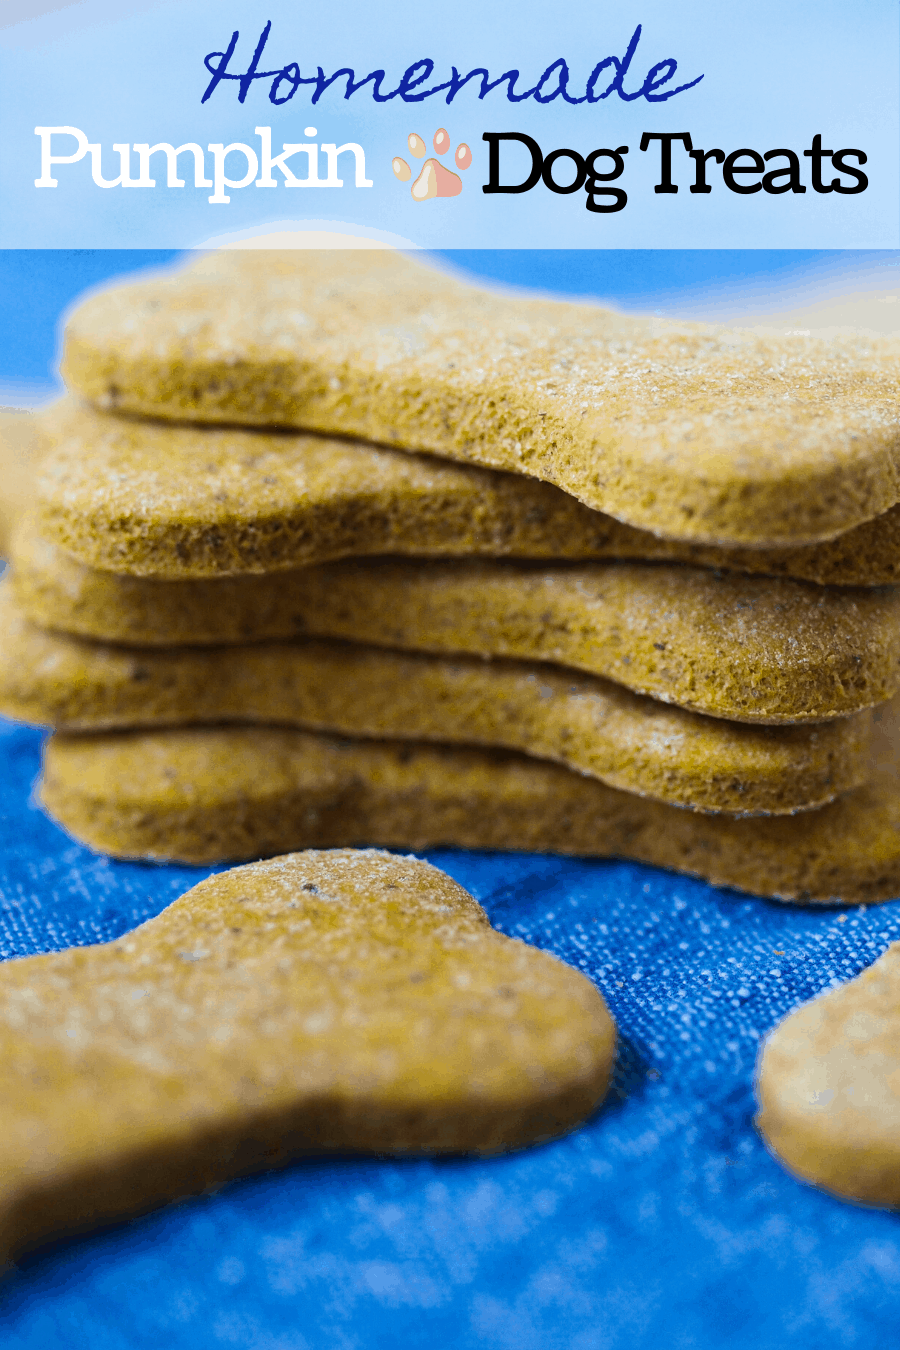 A pinterest pin for peanut butter pumpkin dog treats with a stack of peanut butter pumpkin dog treats.